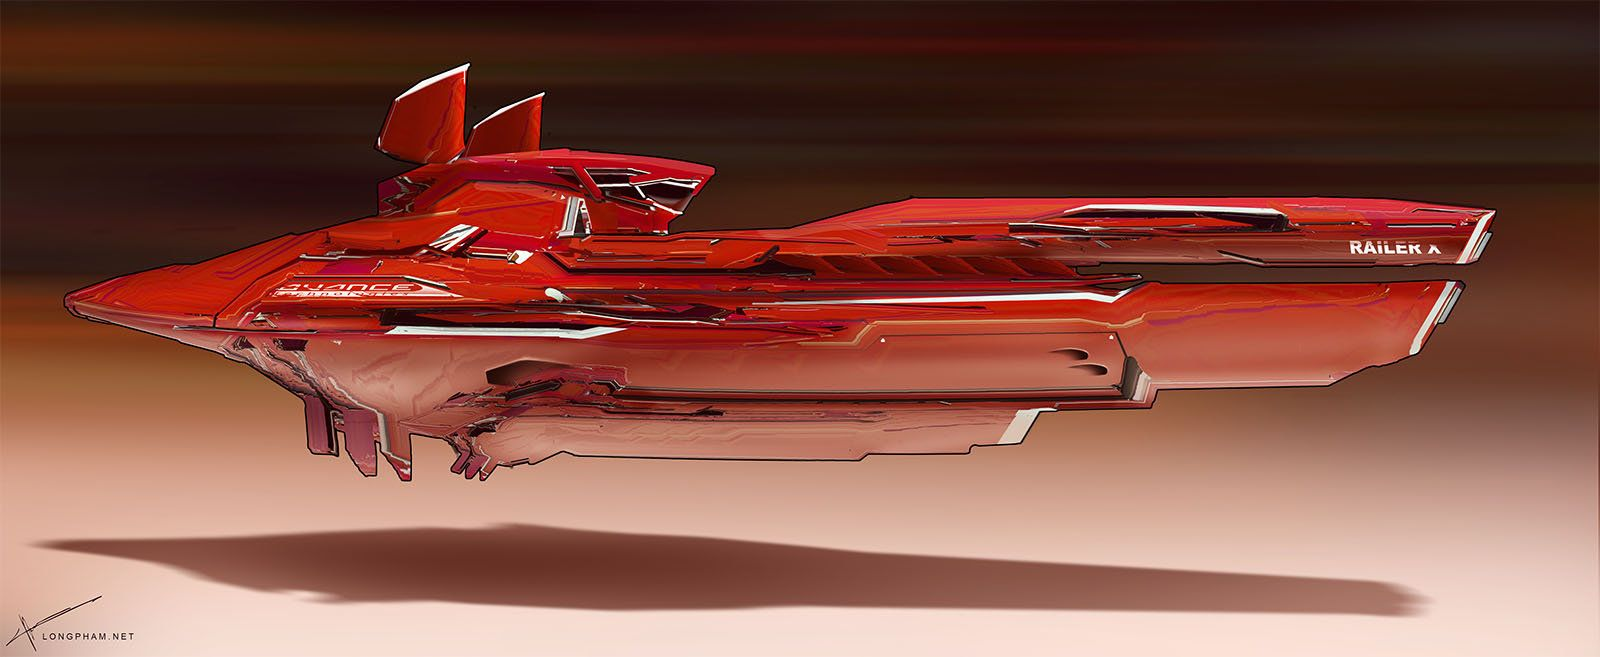 Racer ship - Red, Long Pham on ArtStation at http://www.artstation.com/artwork/racer-ship-red